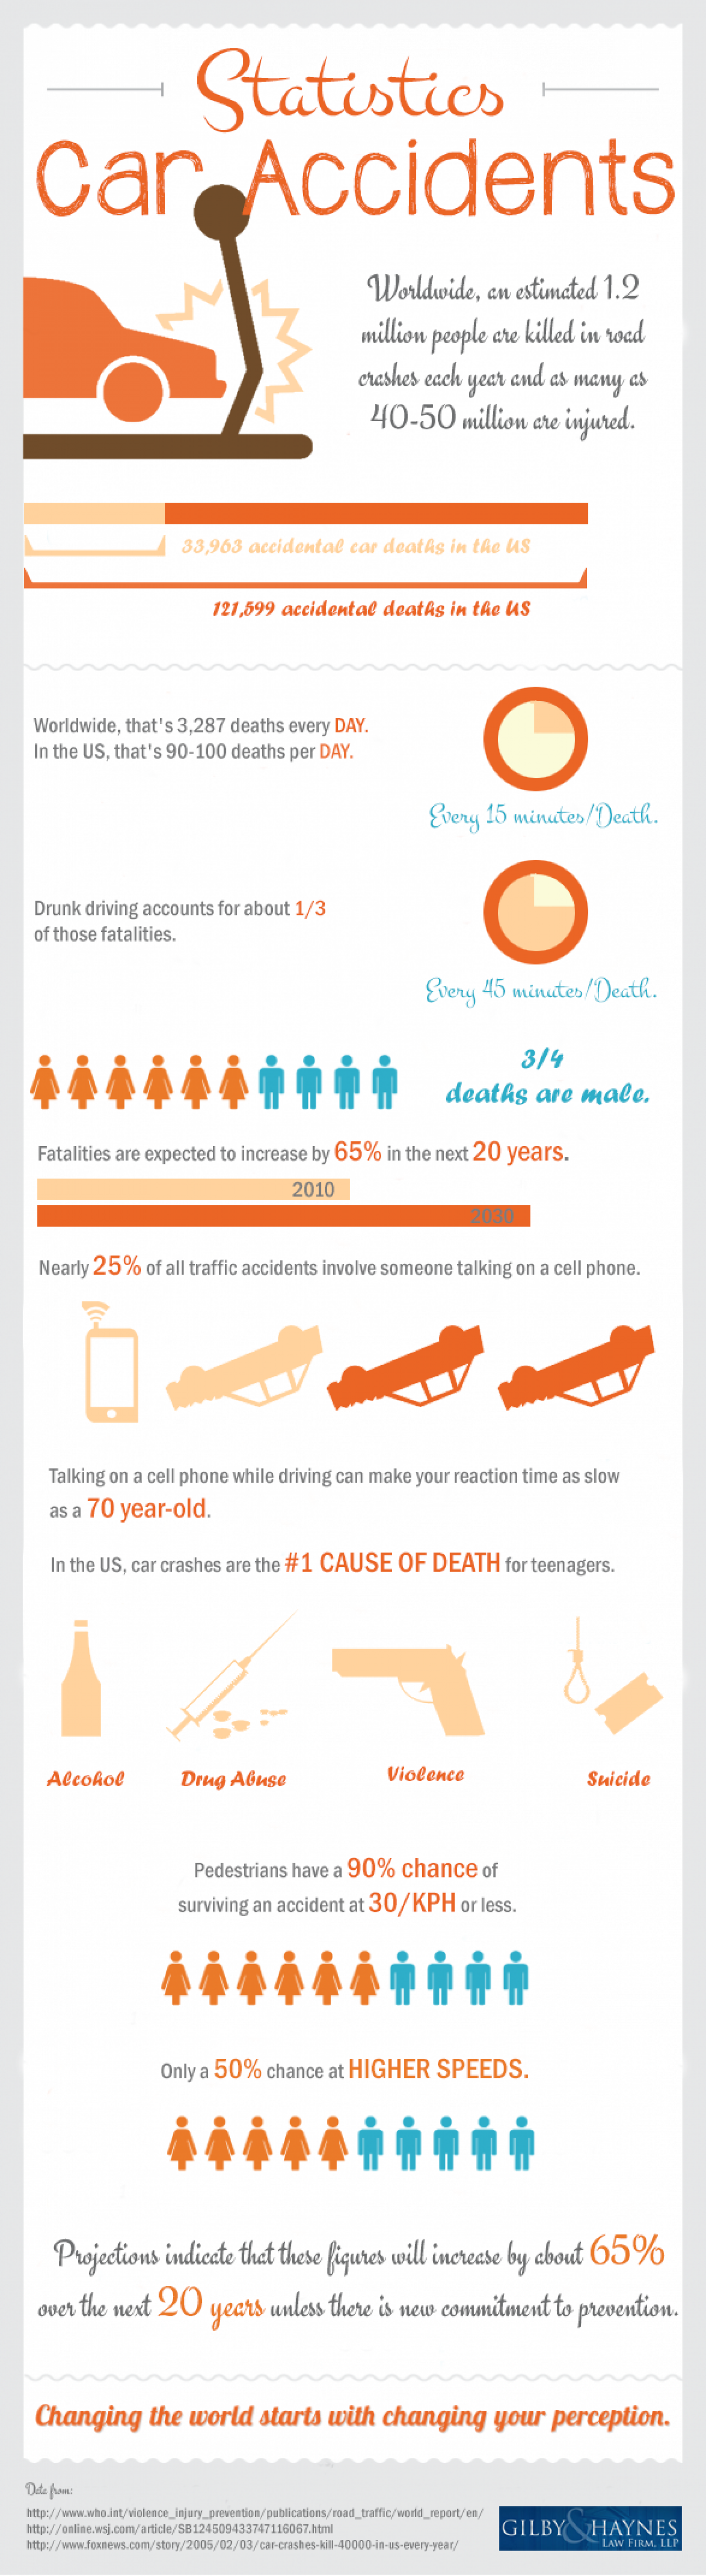 Statistics: Car Accidents Infographic